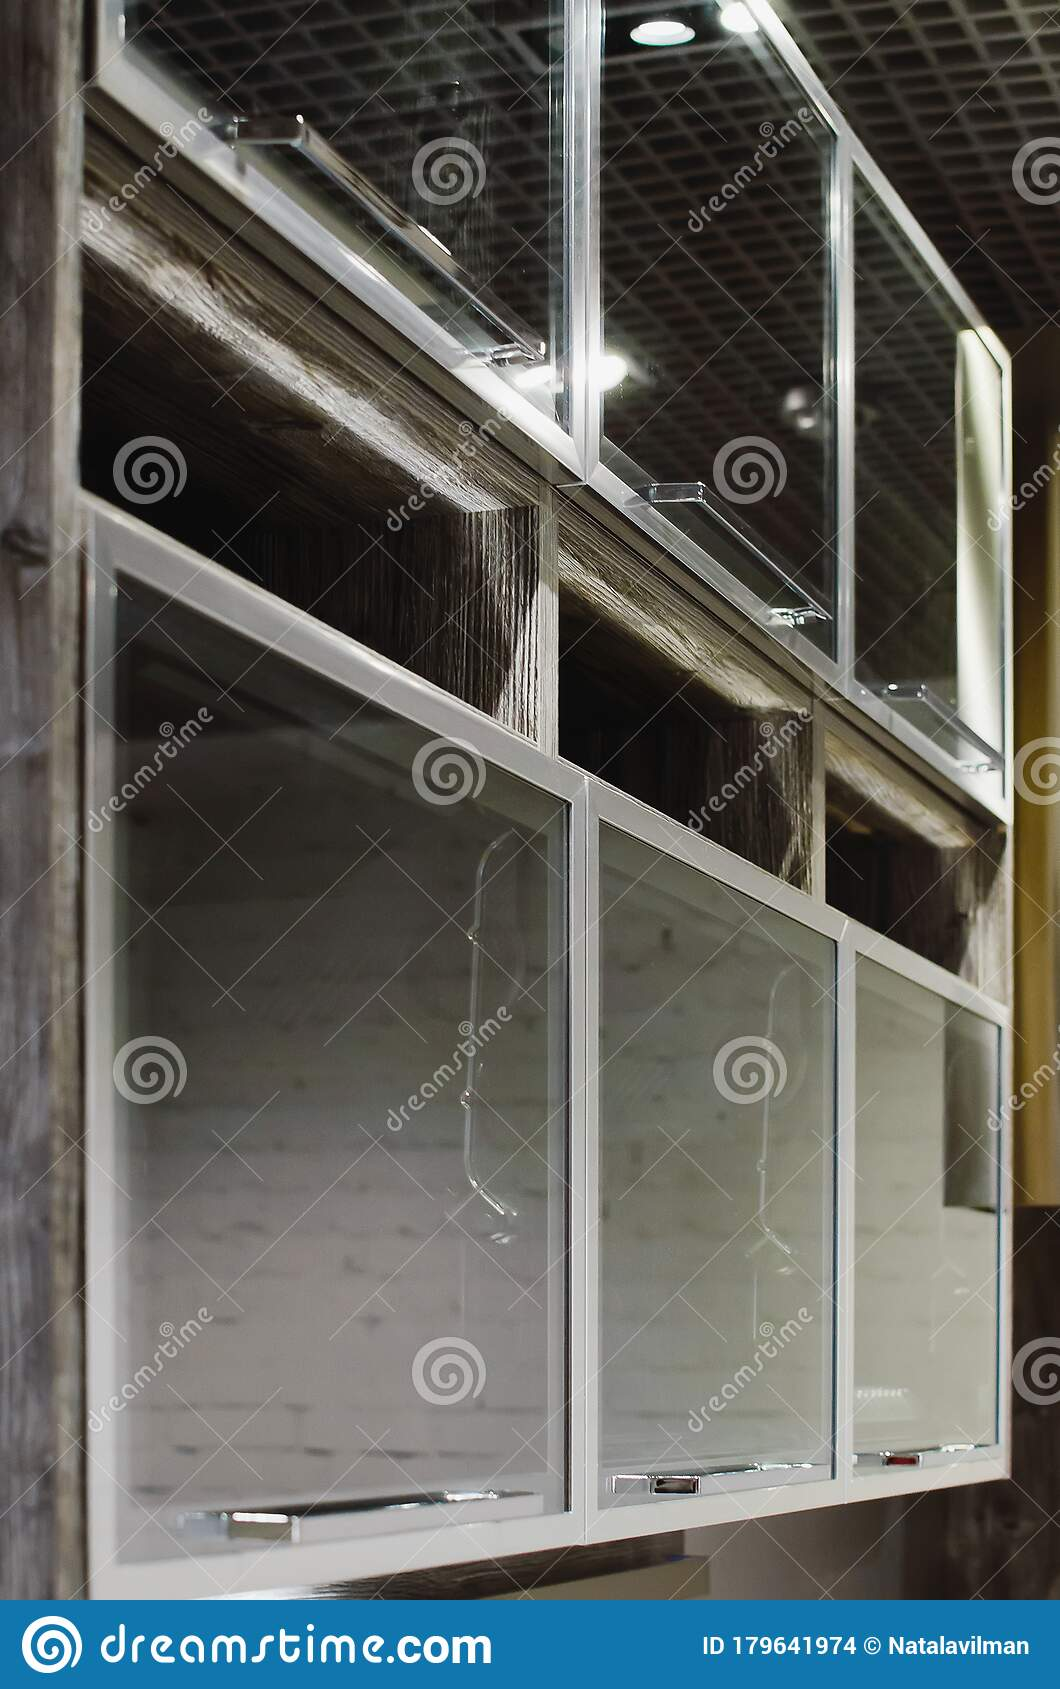 Wall Mounted Kitchen Cabinets With Glass Doors Closeup Selective Focus Modern Fashionable Furniture Stock Photo Image Of Detail Close 179641974